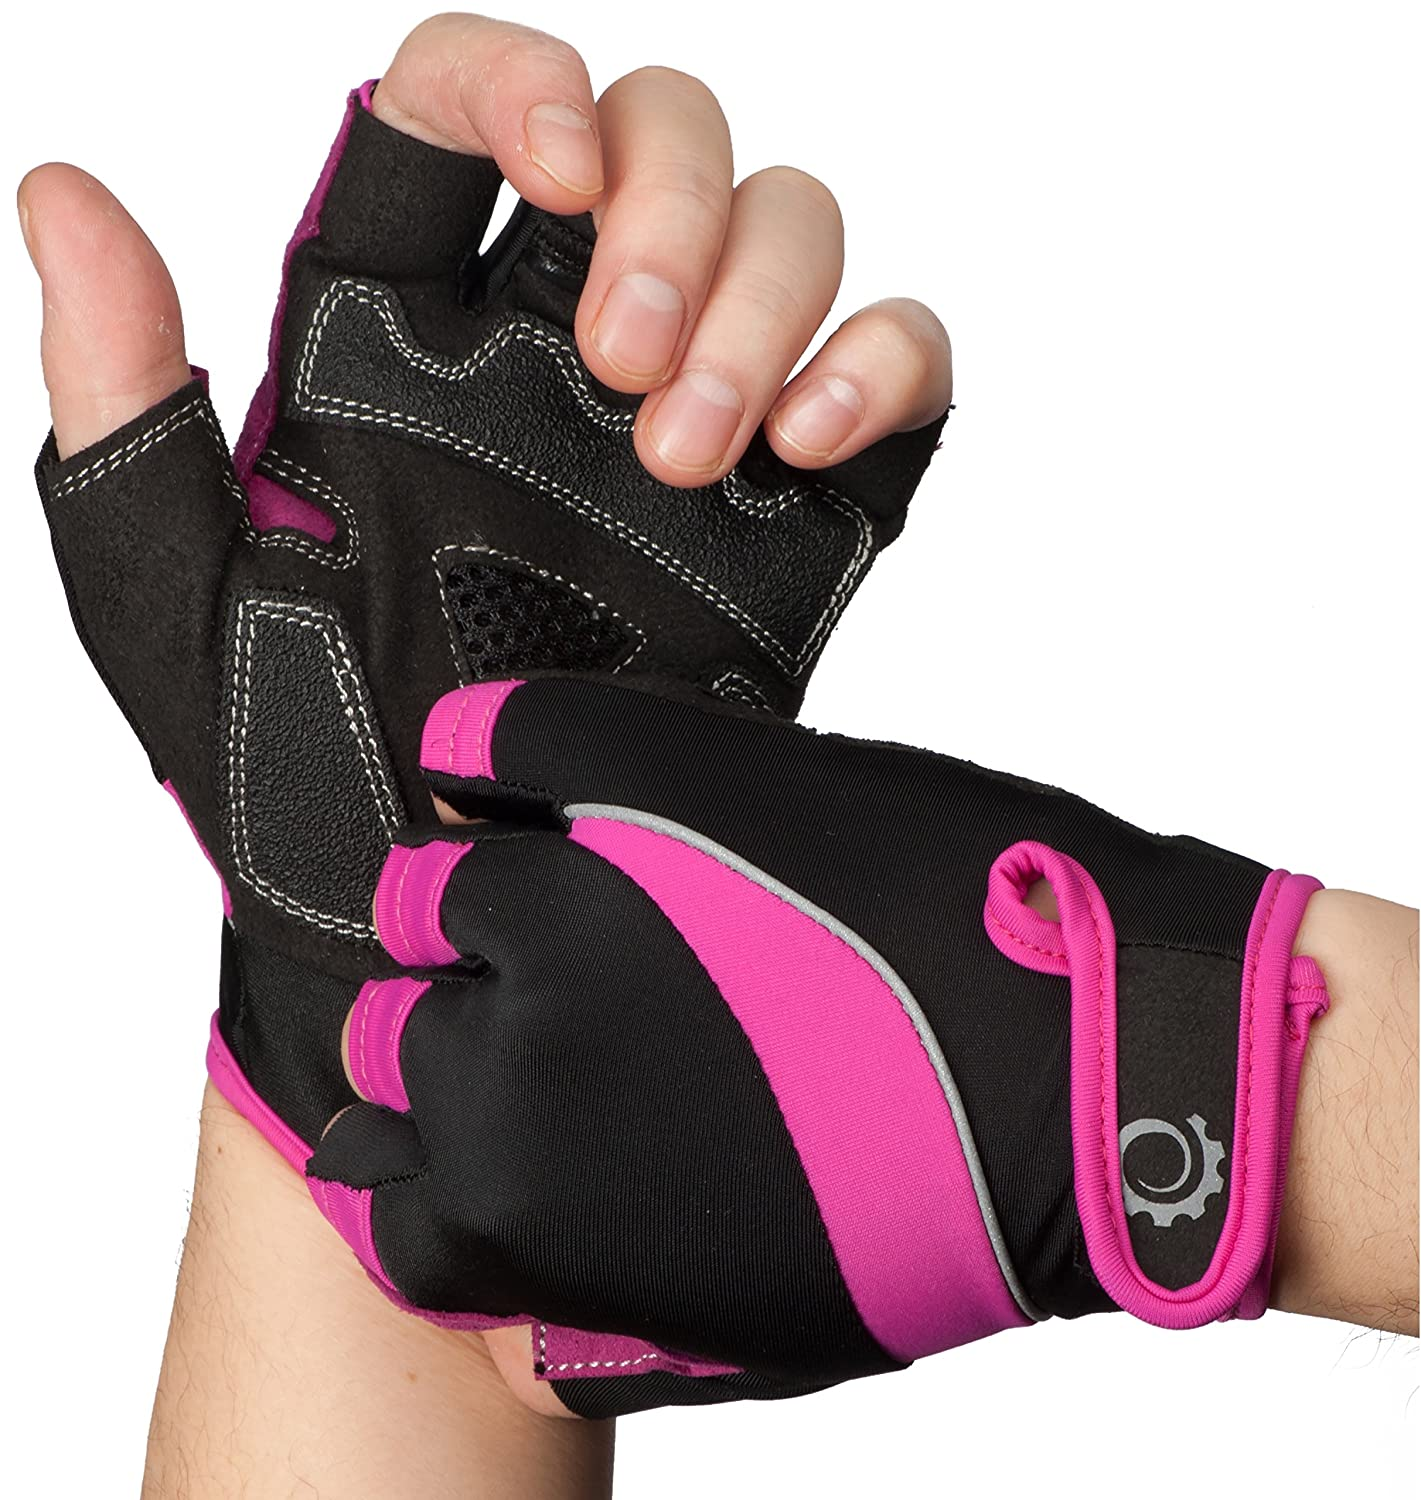 Motorcycle gloves to prevent numbness - Amazon Com Cycle Gloves Half Finger Light Pad Gloves For Riding Weightlifting Cycling And More Women And Men Sporting Gloves Sports Outdoors